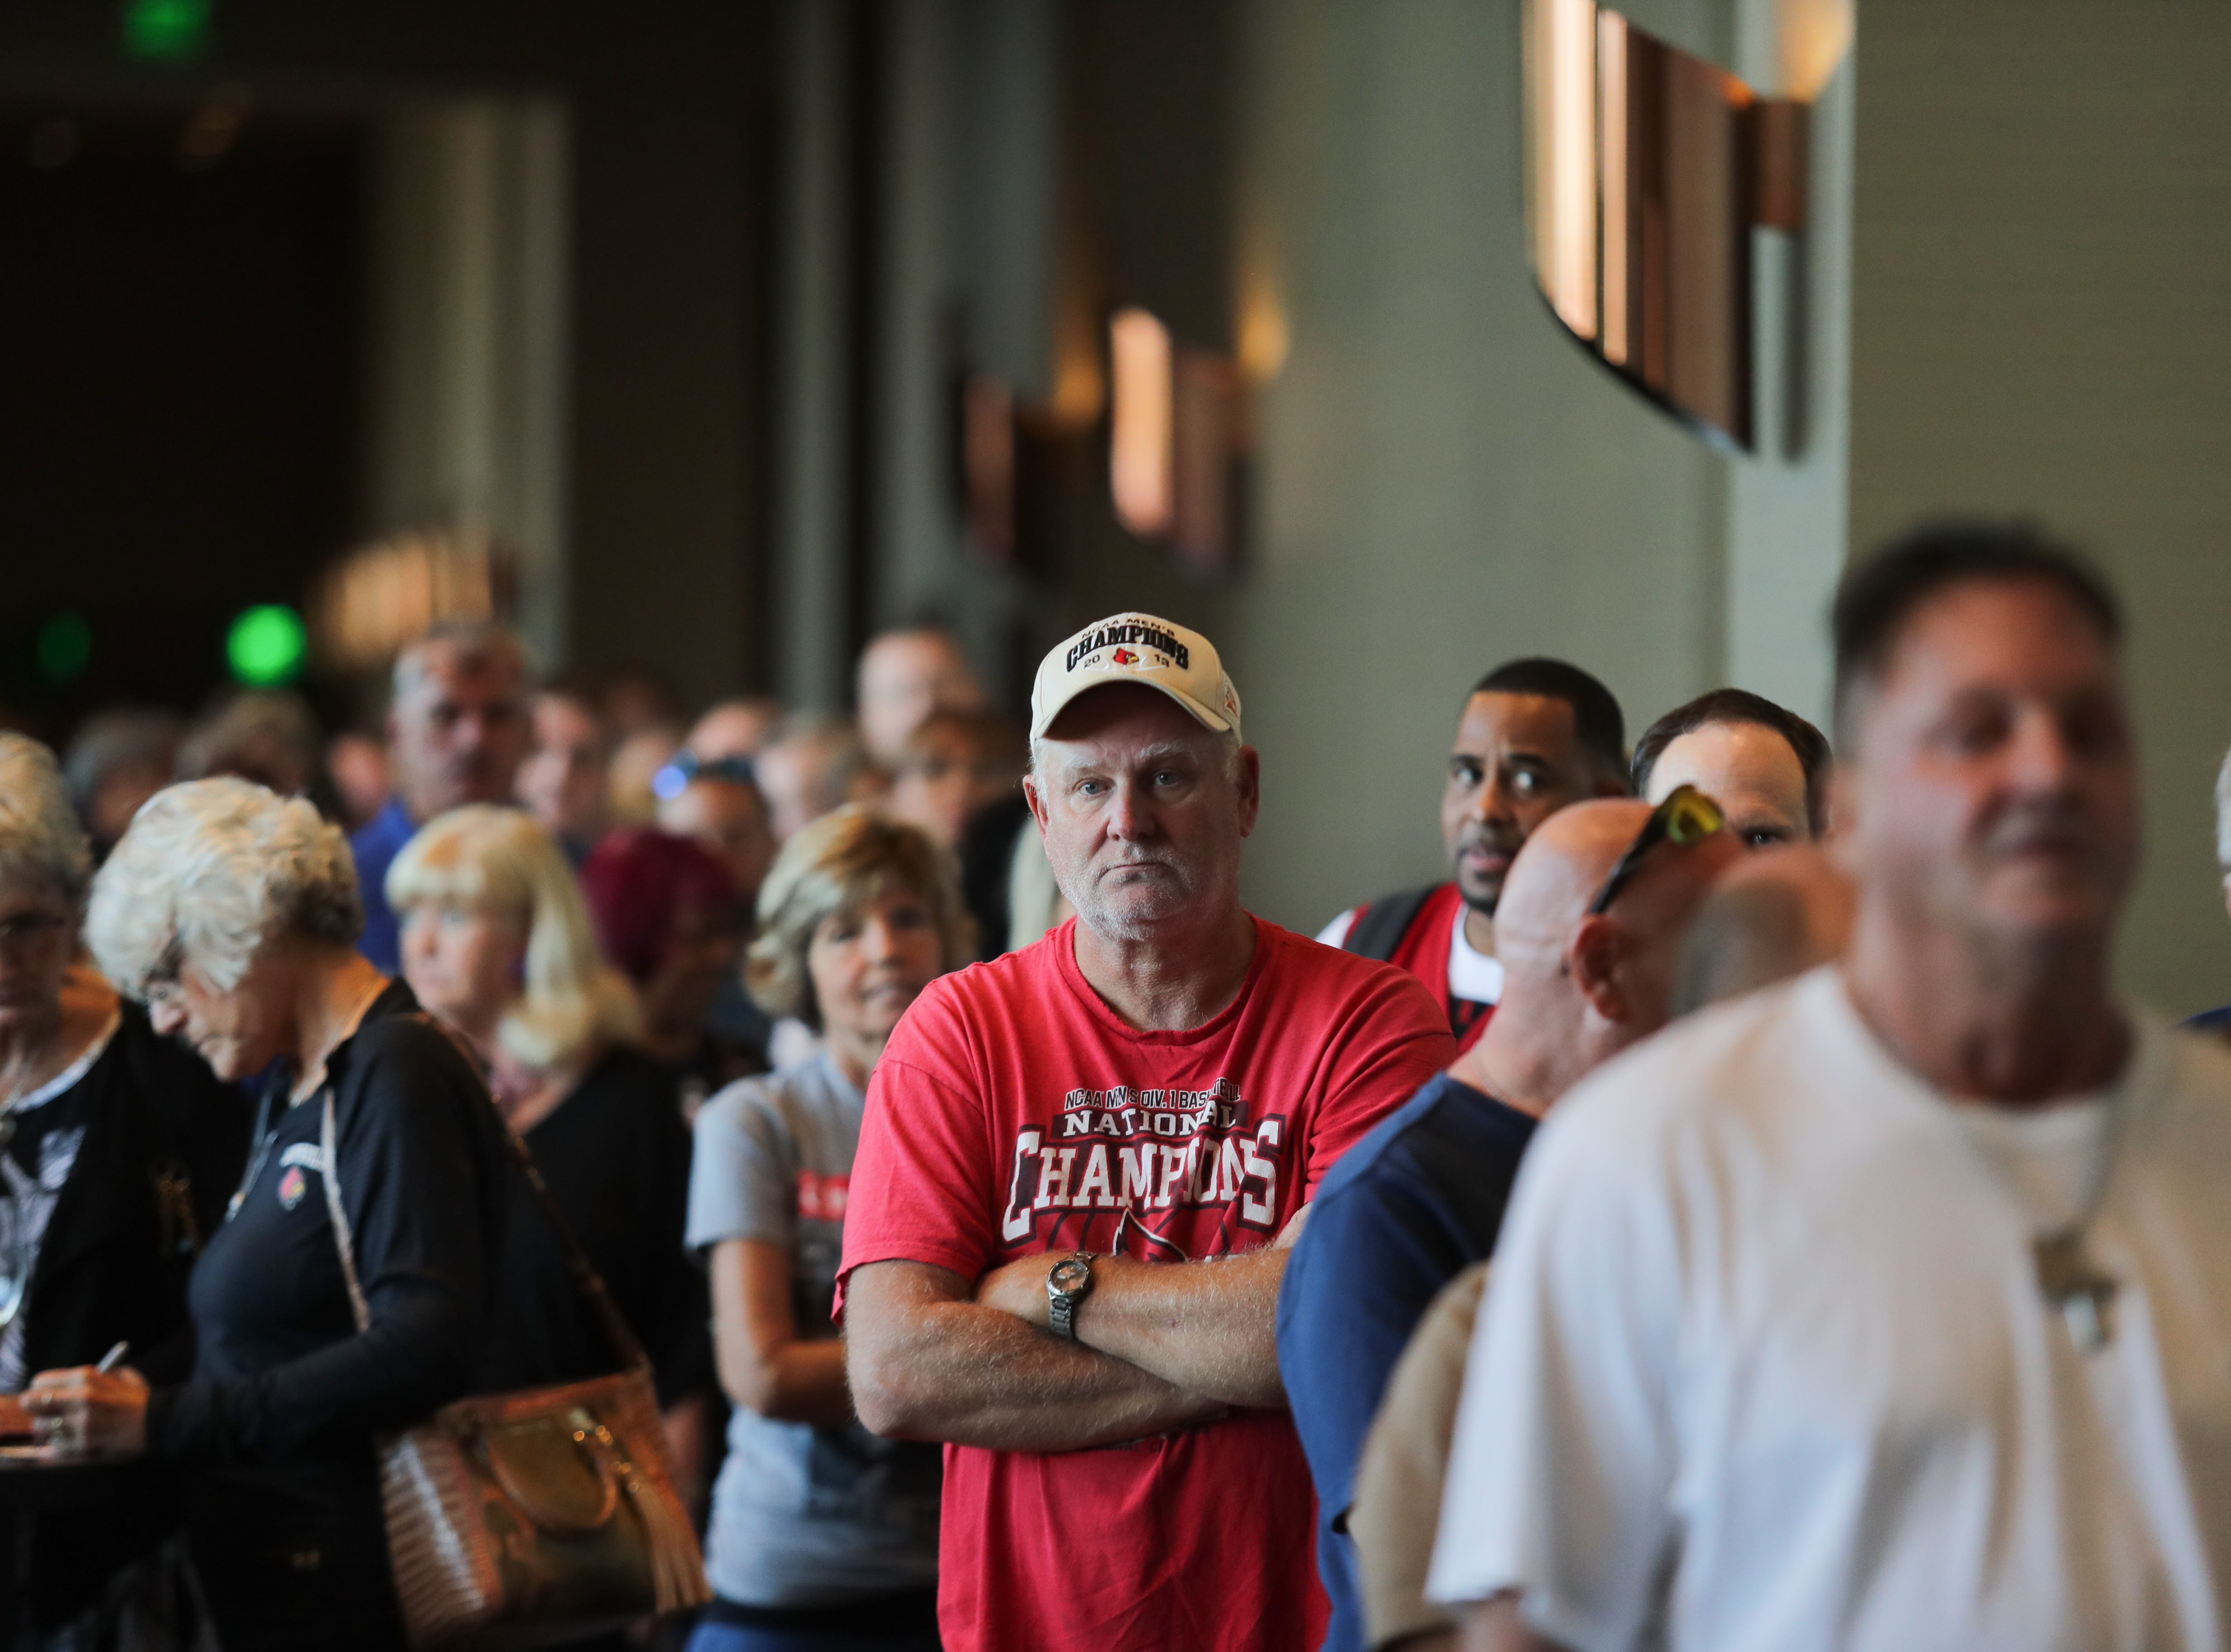 People wait in line for Rick Pitino's book signing at the Omni Hotel on Friday afternoon in Louisville, Kentucky.Sept. 14, 2018